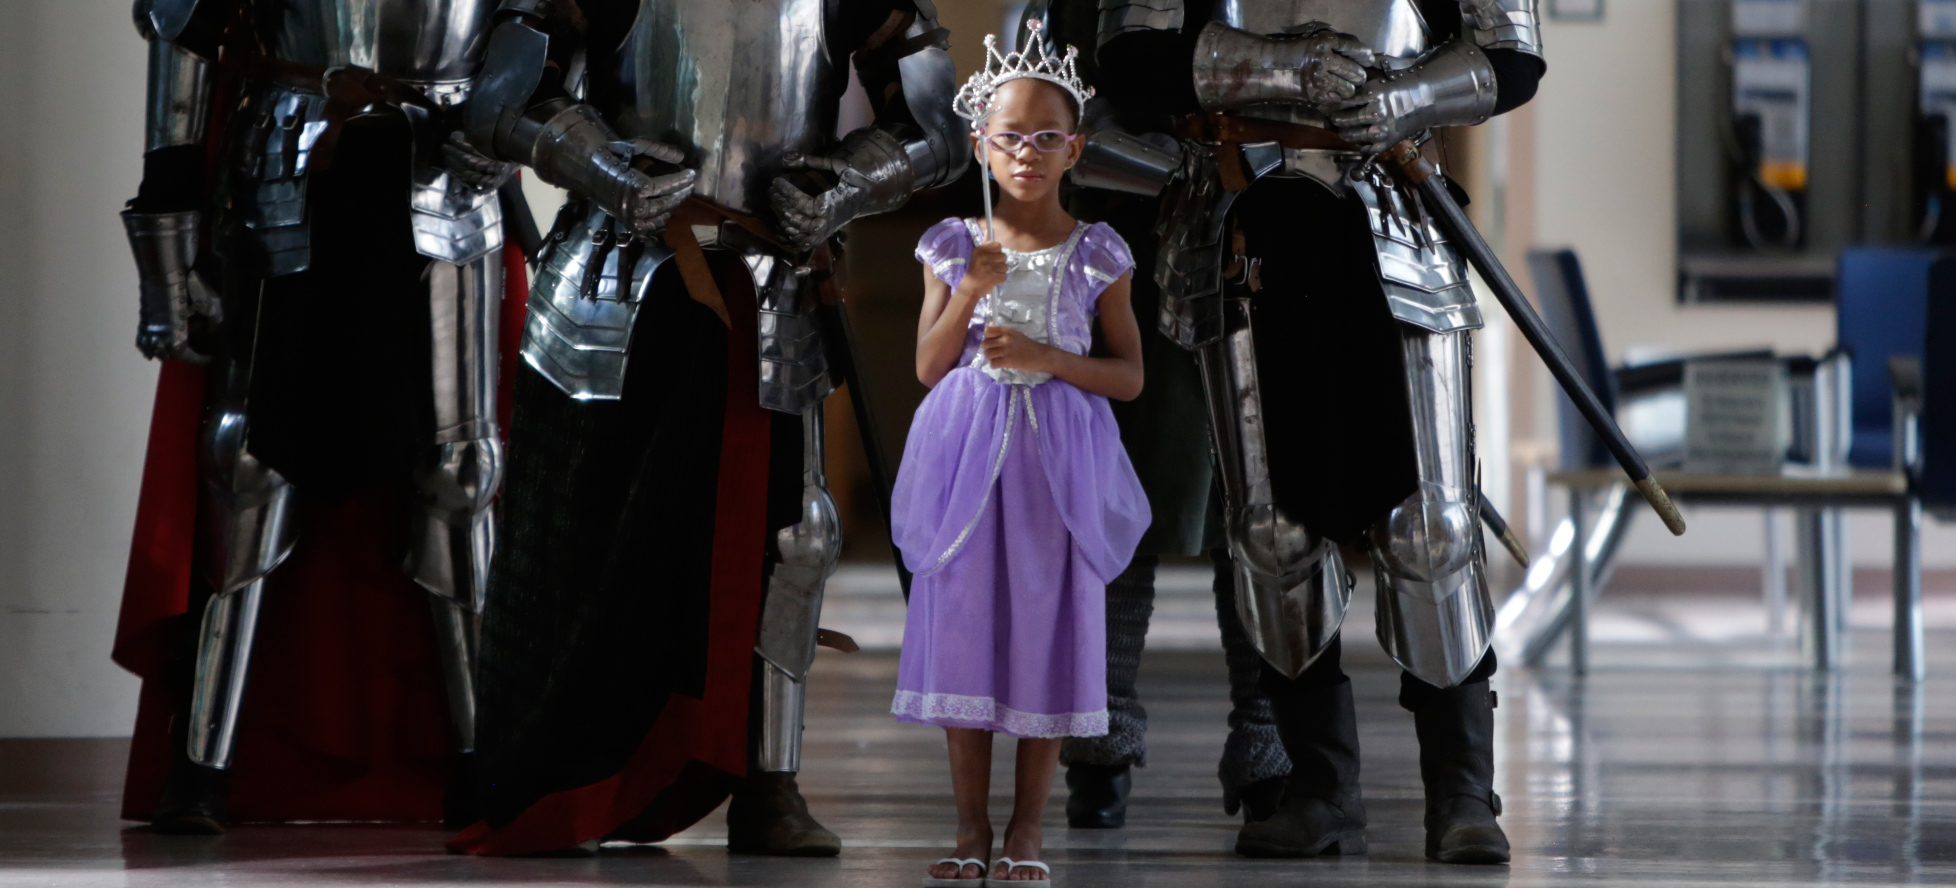 little girl dressed as princess with knights